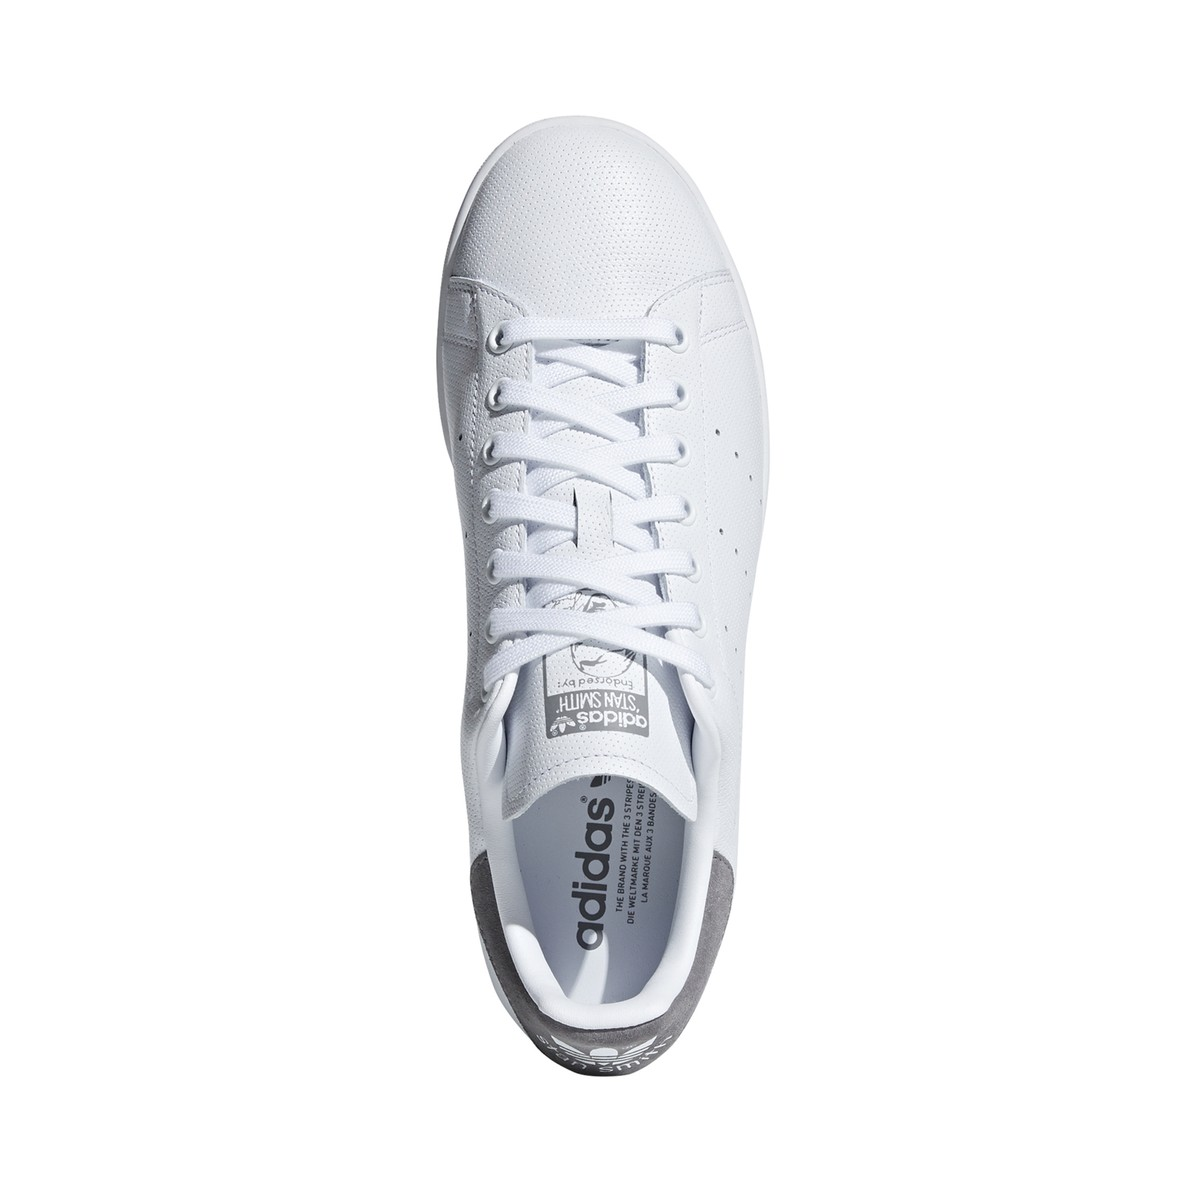 Adidas Stan Smith Trainers. La Redoute £85